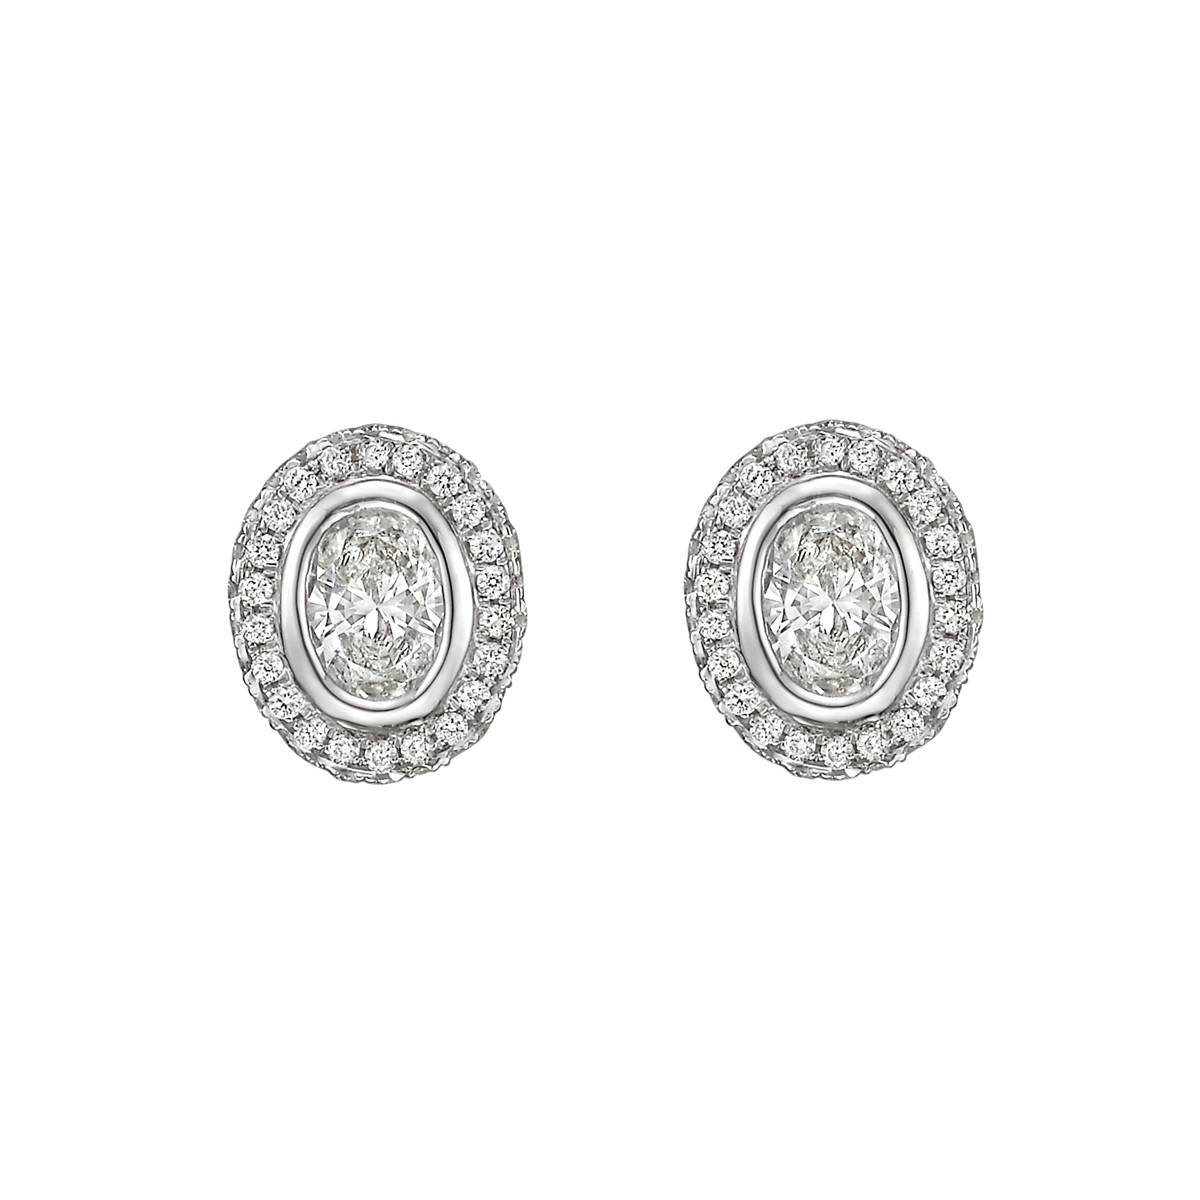 Oval Brilliant-Cut Diamond Halo Stud Earrings